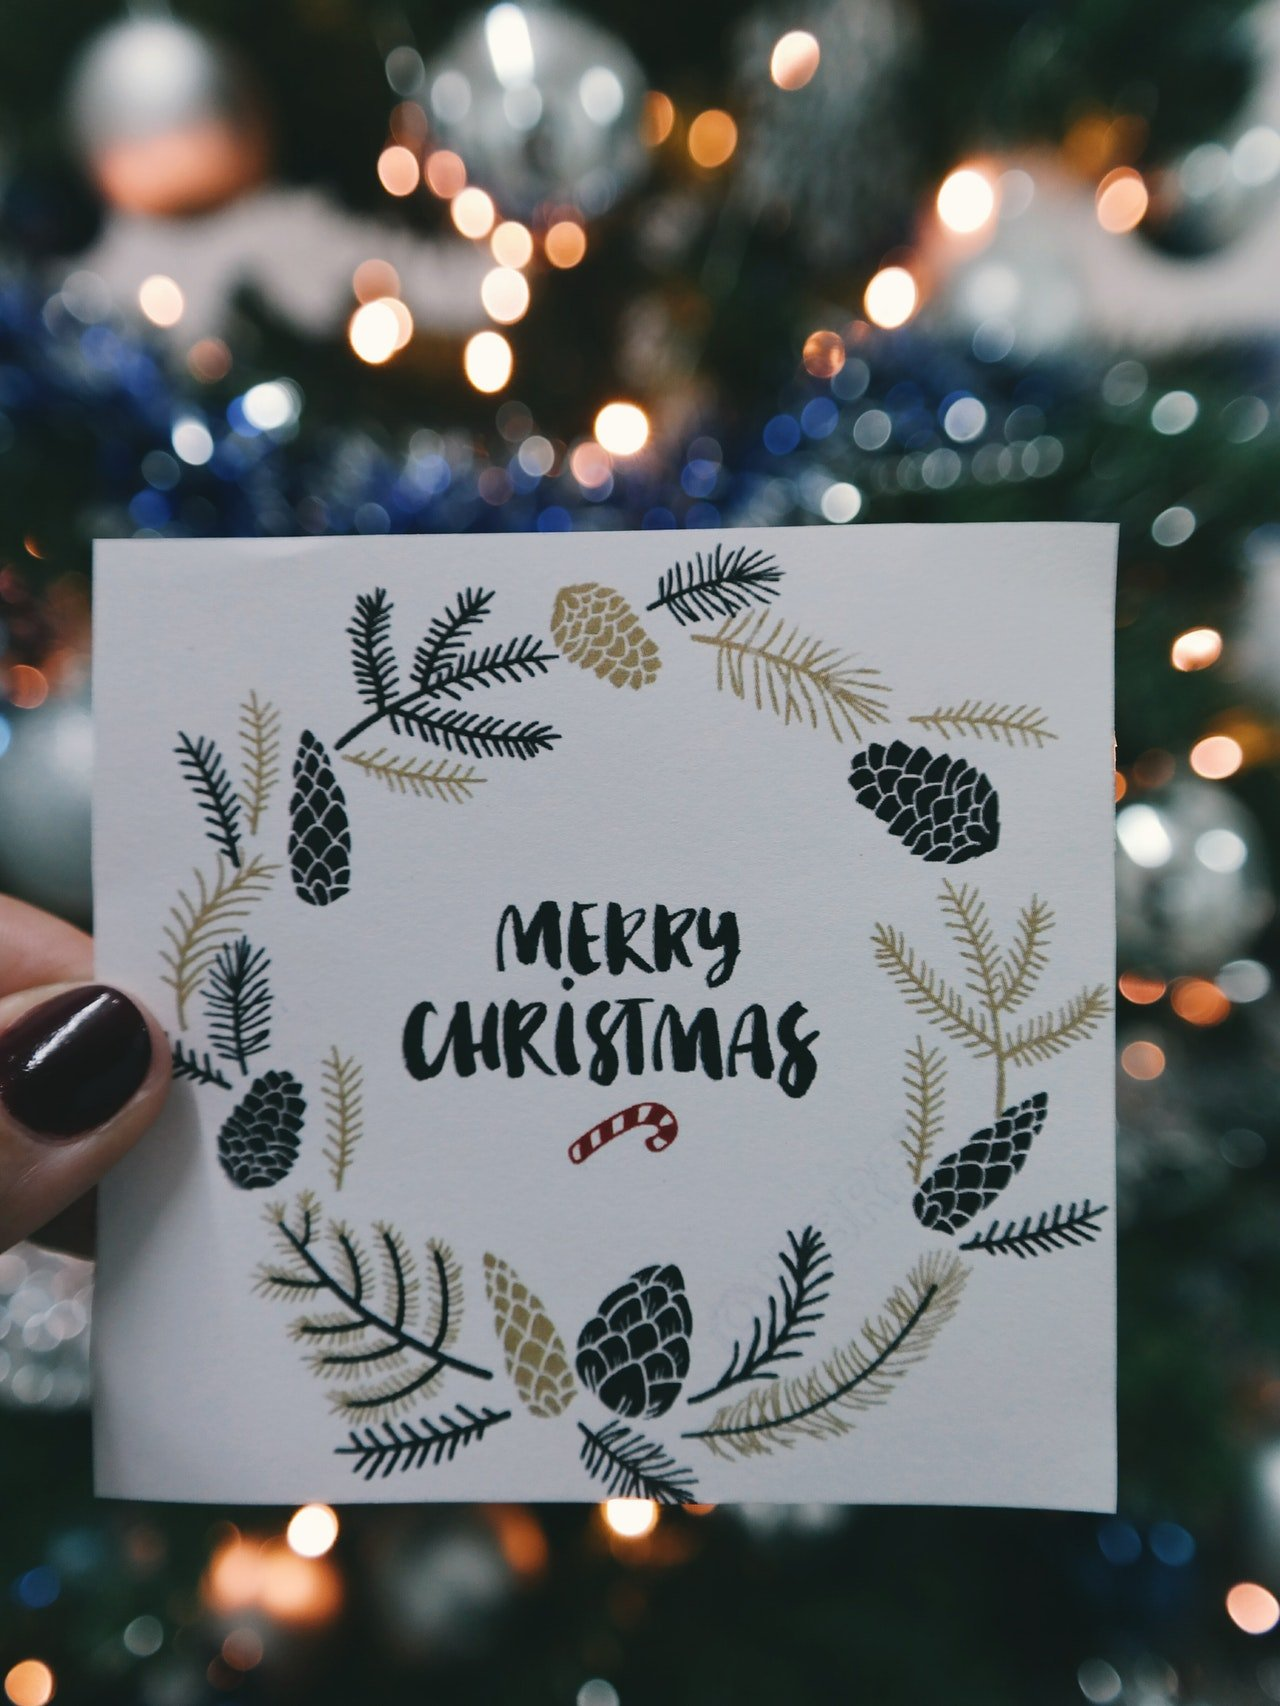 Merry Christmas card | Source: Pexels